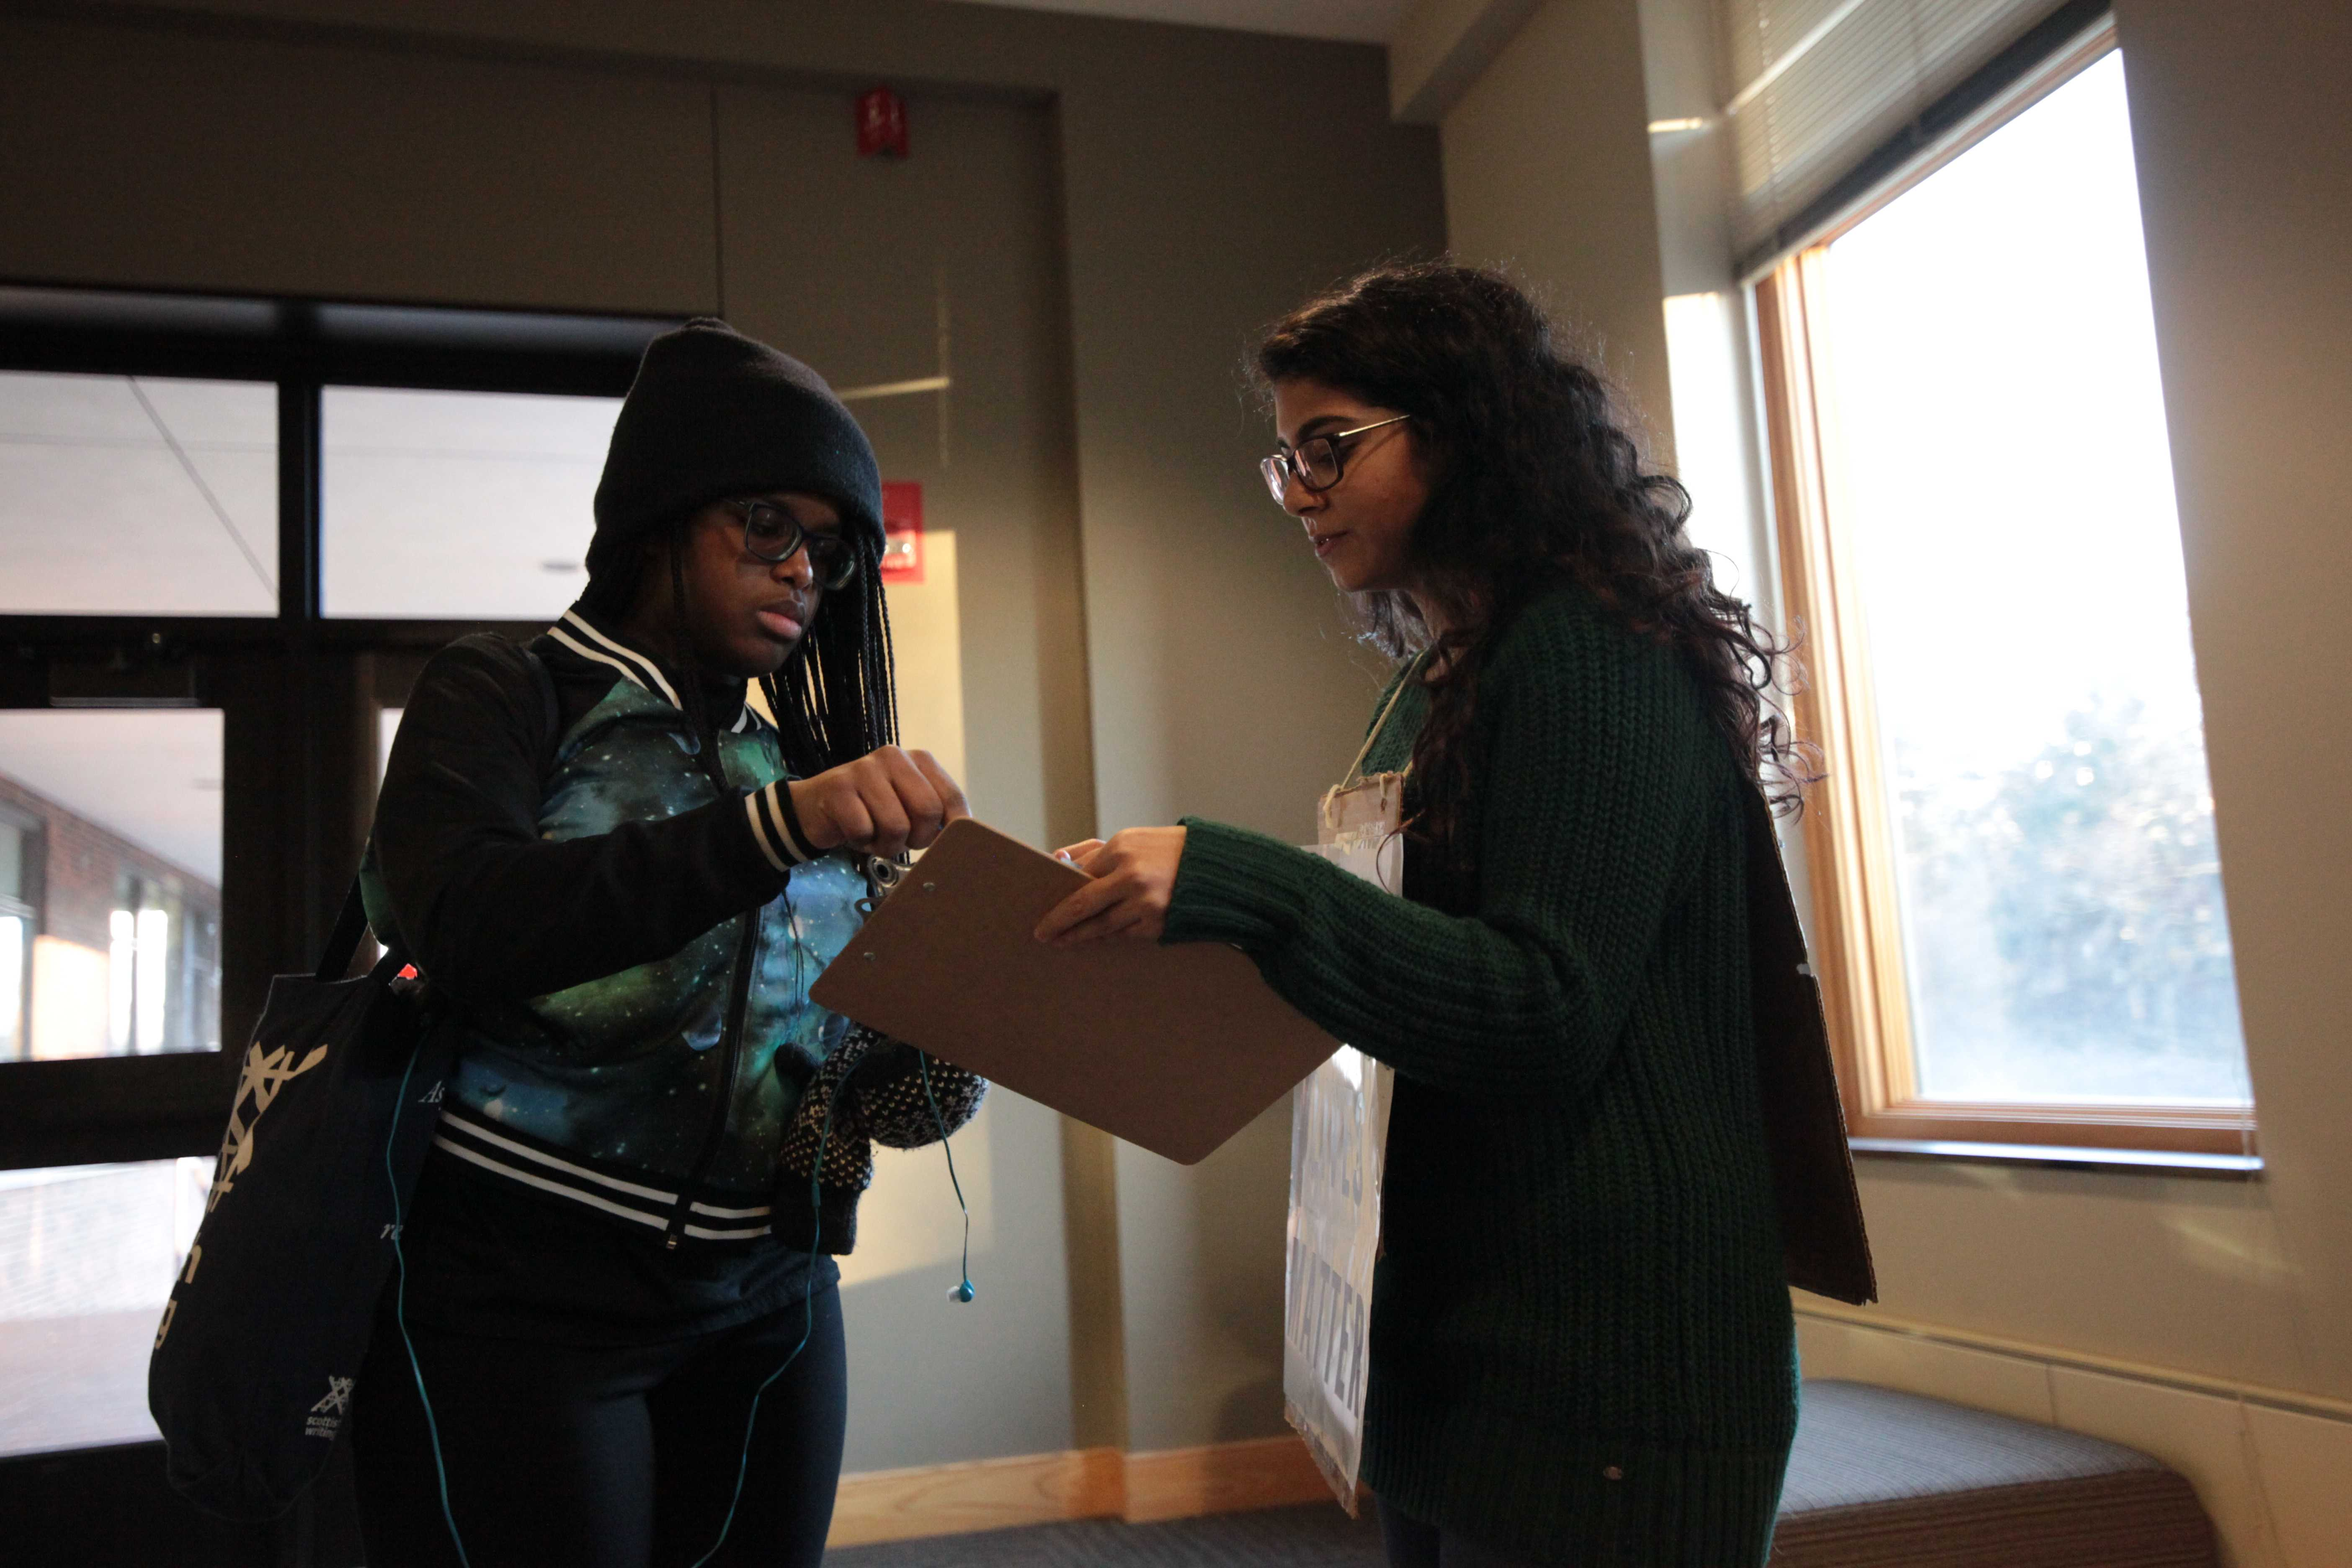 Senior Suhaiba Mohiuddin collects signatures for the petition of solidarity. Photo by LuAnna Gerdemann.